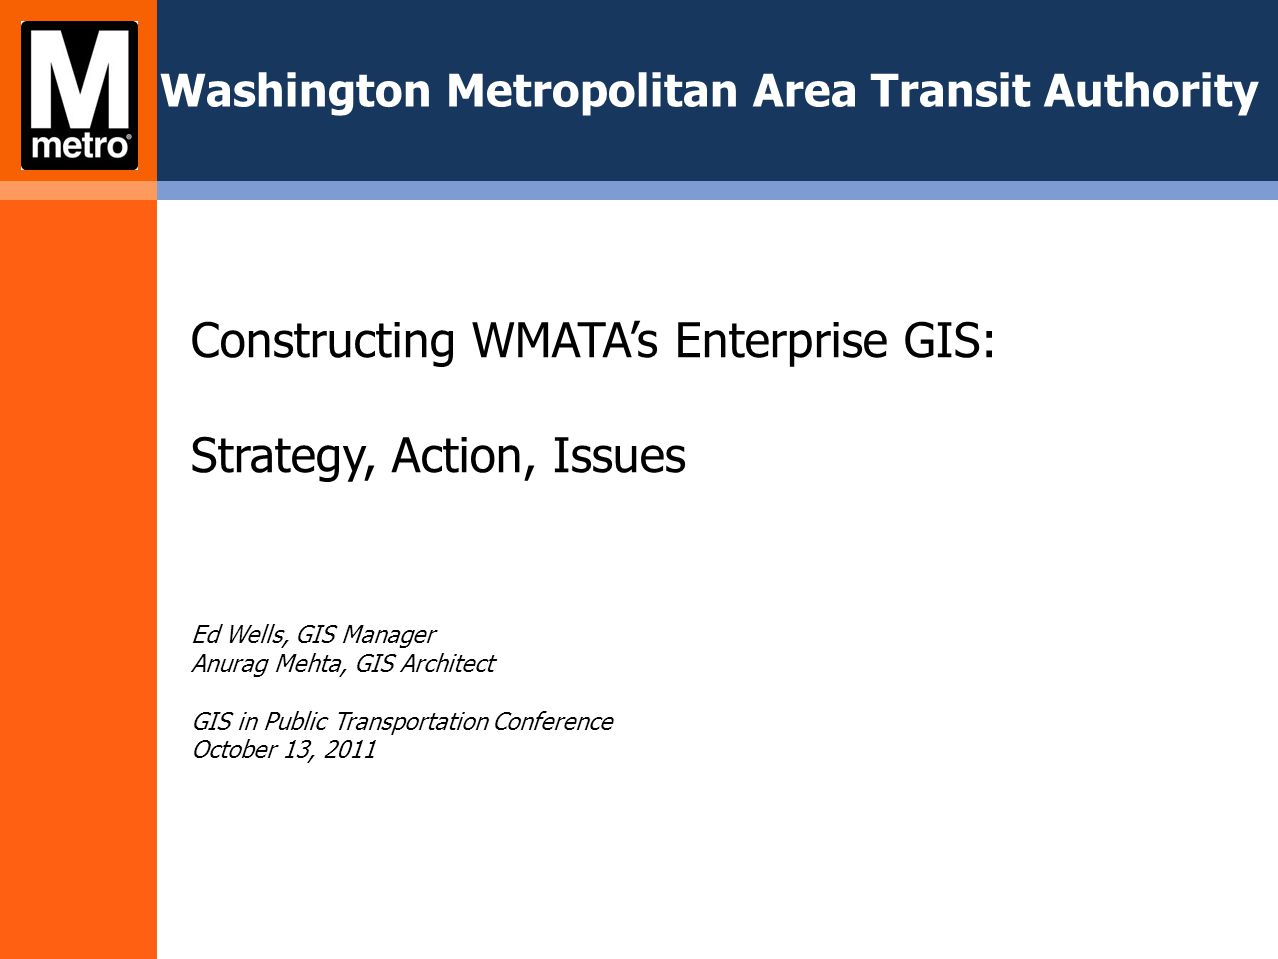 Constructing WMATA's Enterprise GIS: Strategy, Action, Issues